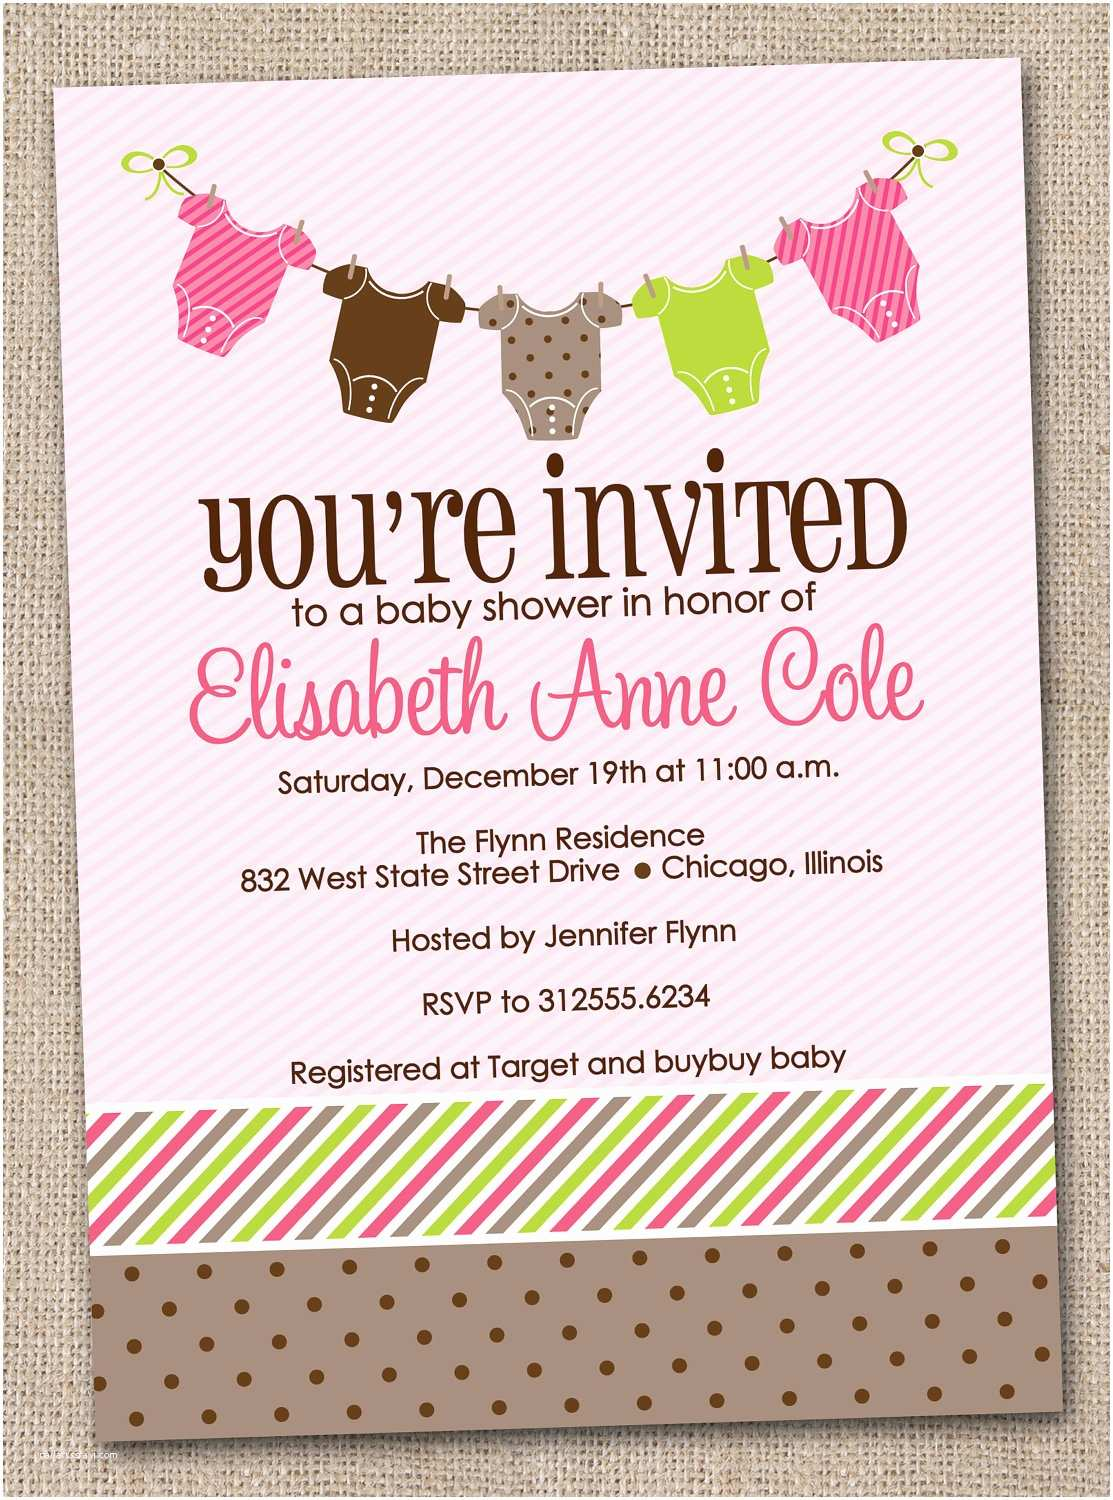 Sample Baby Shower Invitations Design Sample Baby Shower Invitations Message Sample